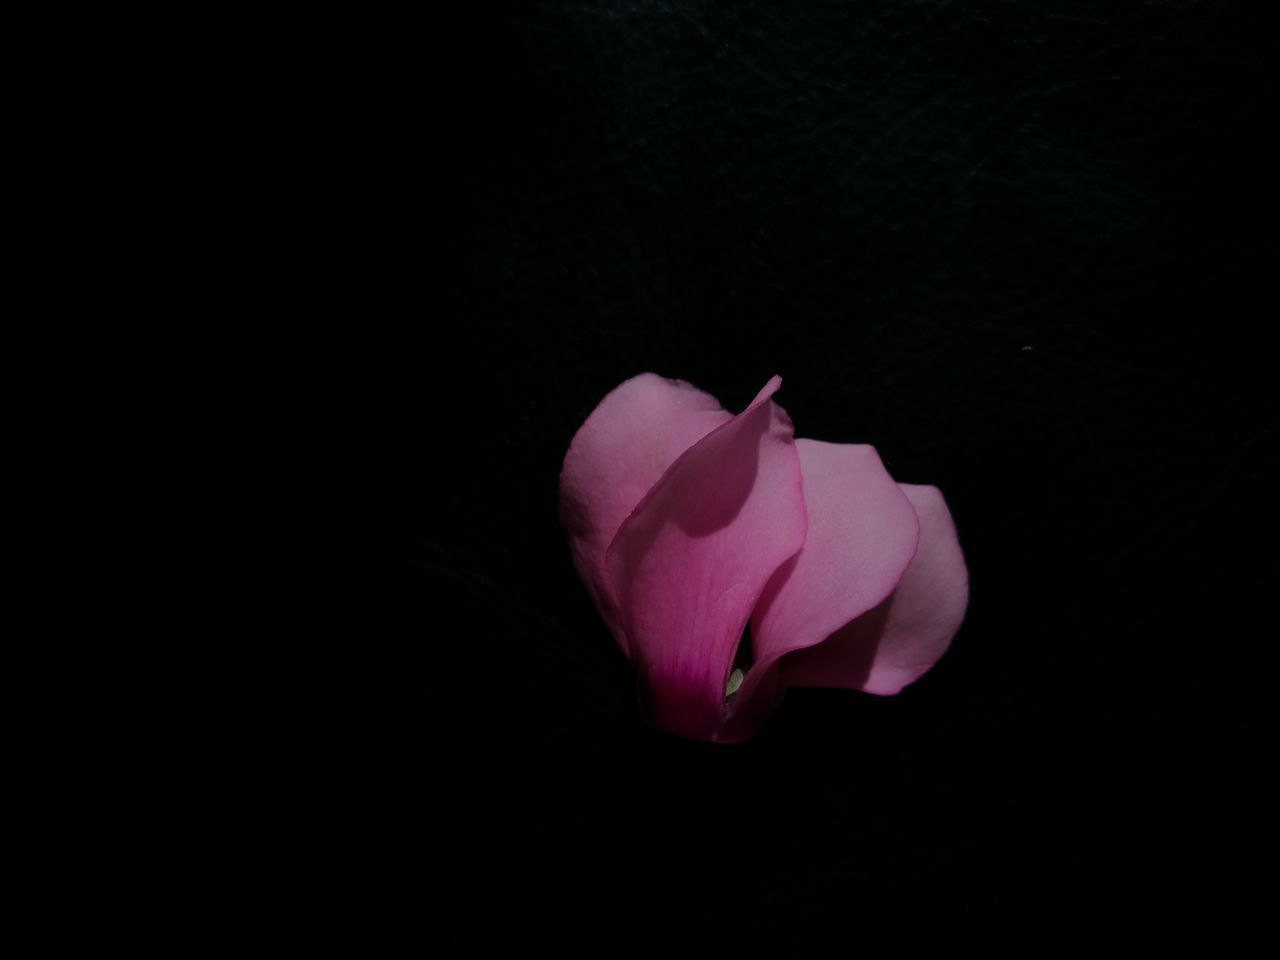 flower, petal, flower head, fragility, freshness, studio shot, beauty in nature, black background, nature, pink color, copy space, rose - flower, no people, close-up, blooming, growth, night, outdoors